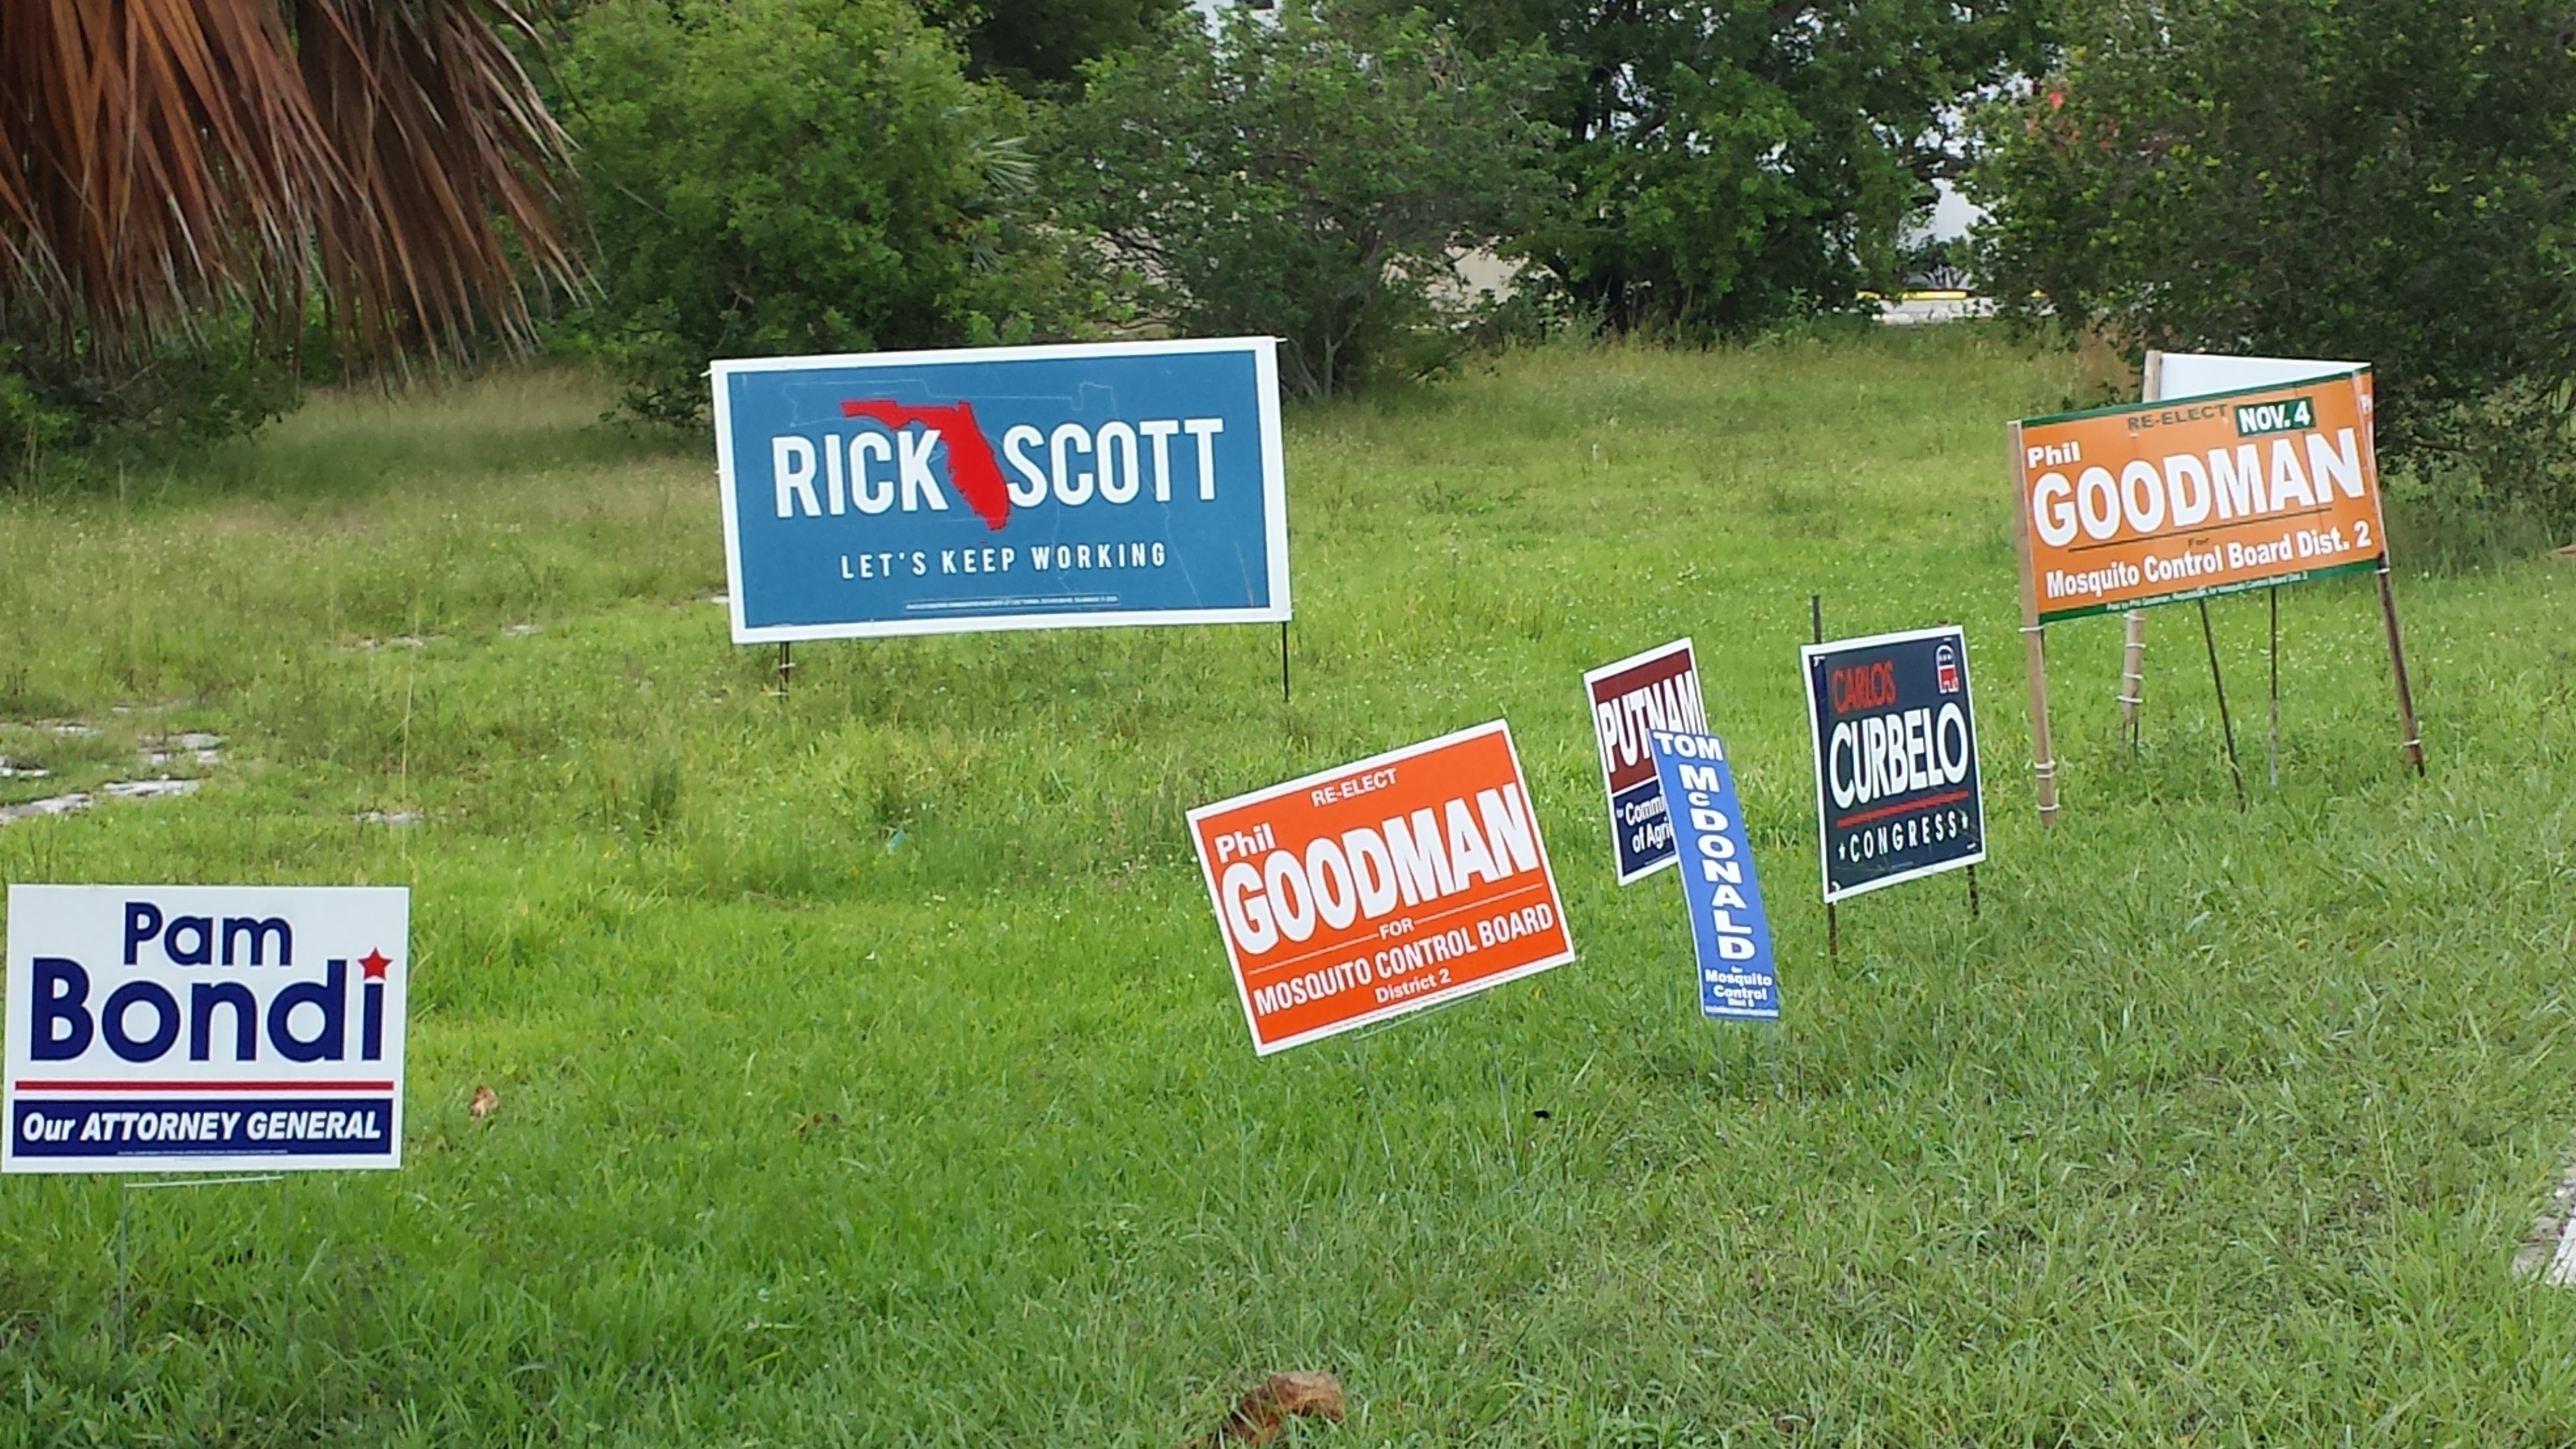 2014 campaign signs